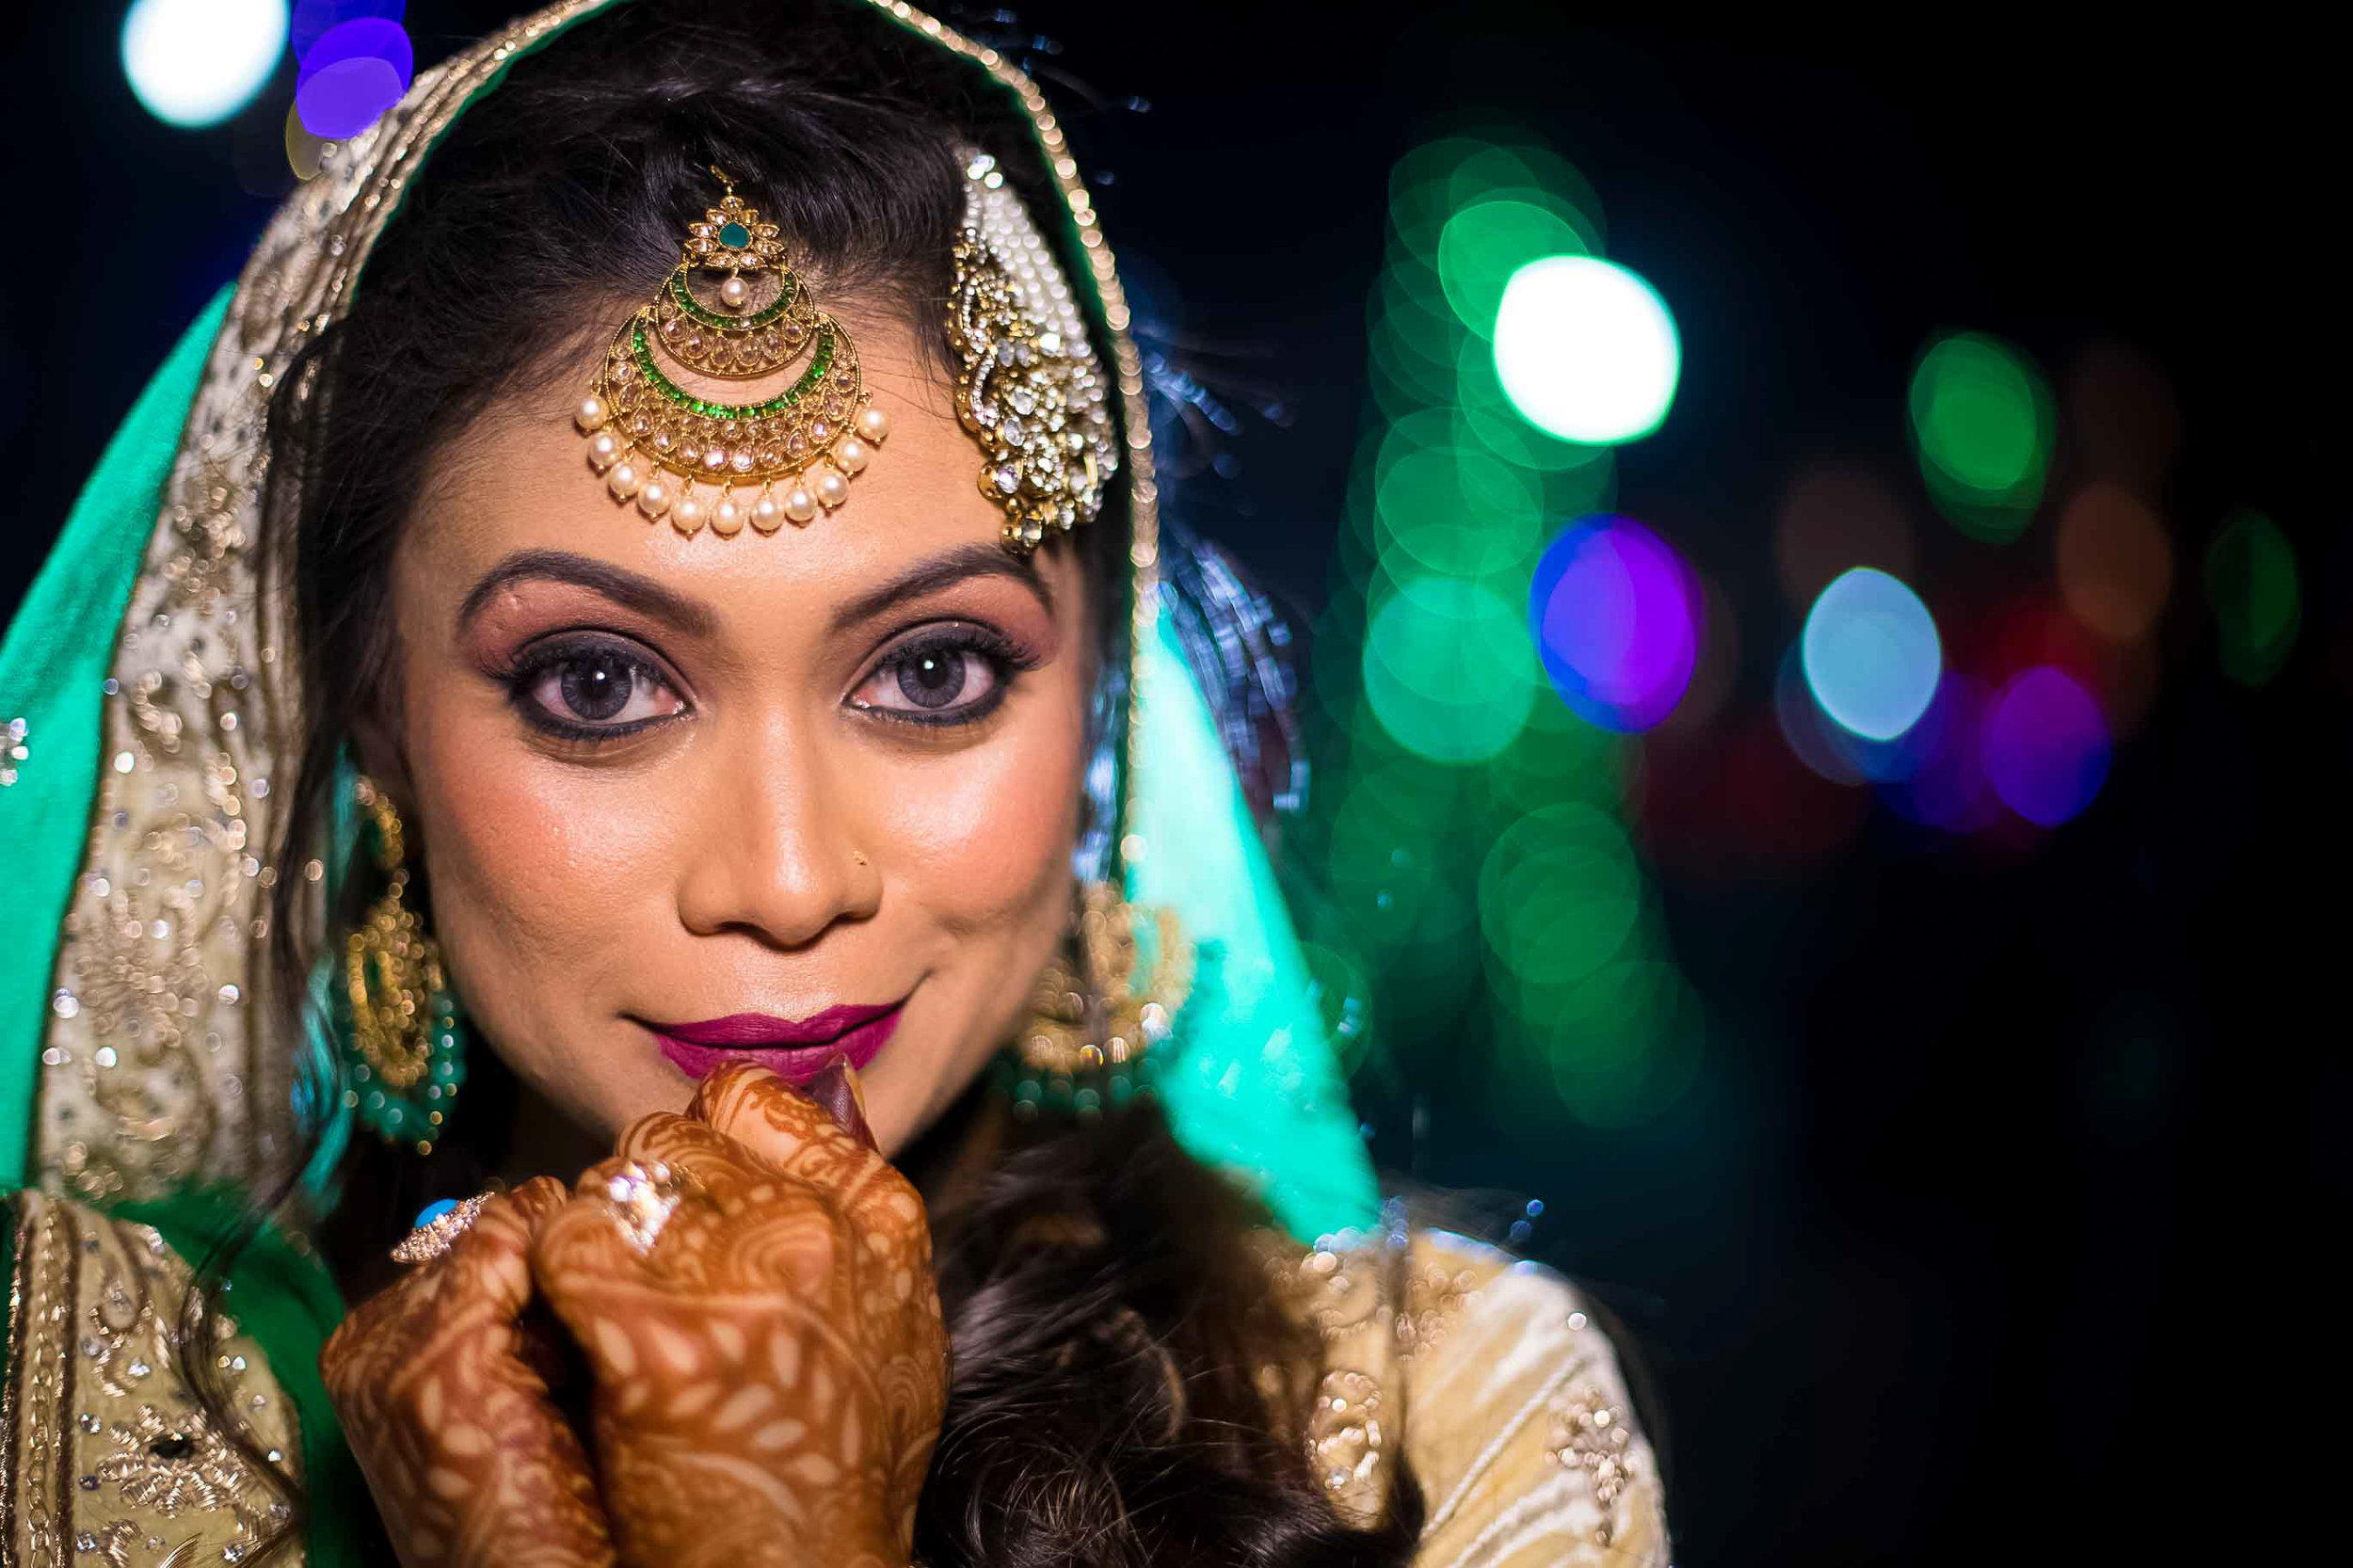 Pixel-Chronicles-Meraj-Yousuf-Candid-Wedding-Documentary-Photography-Beautiful-Bride-Best-Portrait-Muslim-Wedding-17.jpg